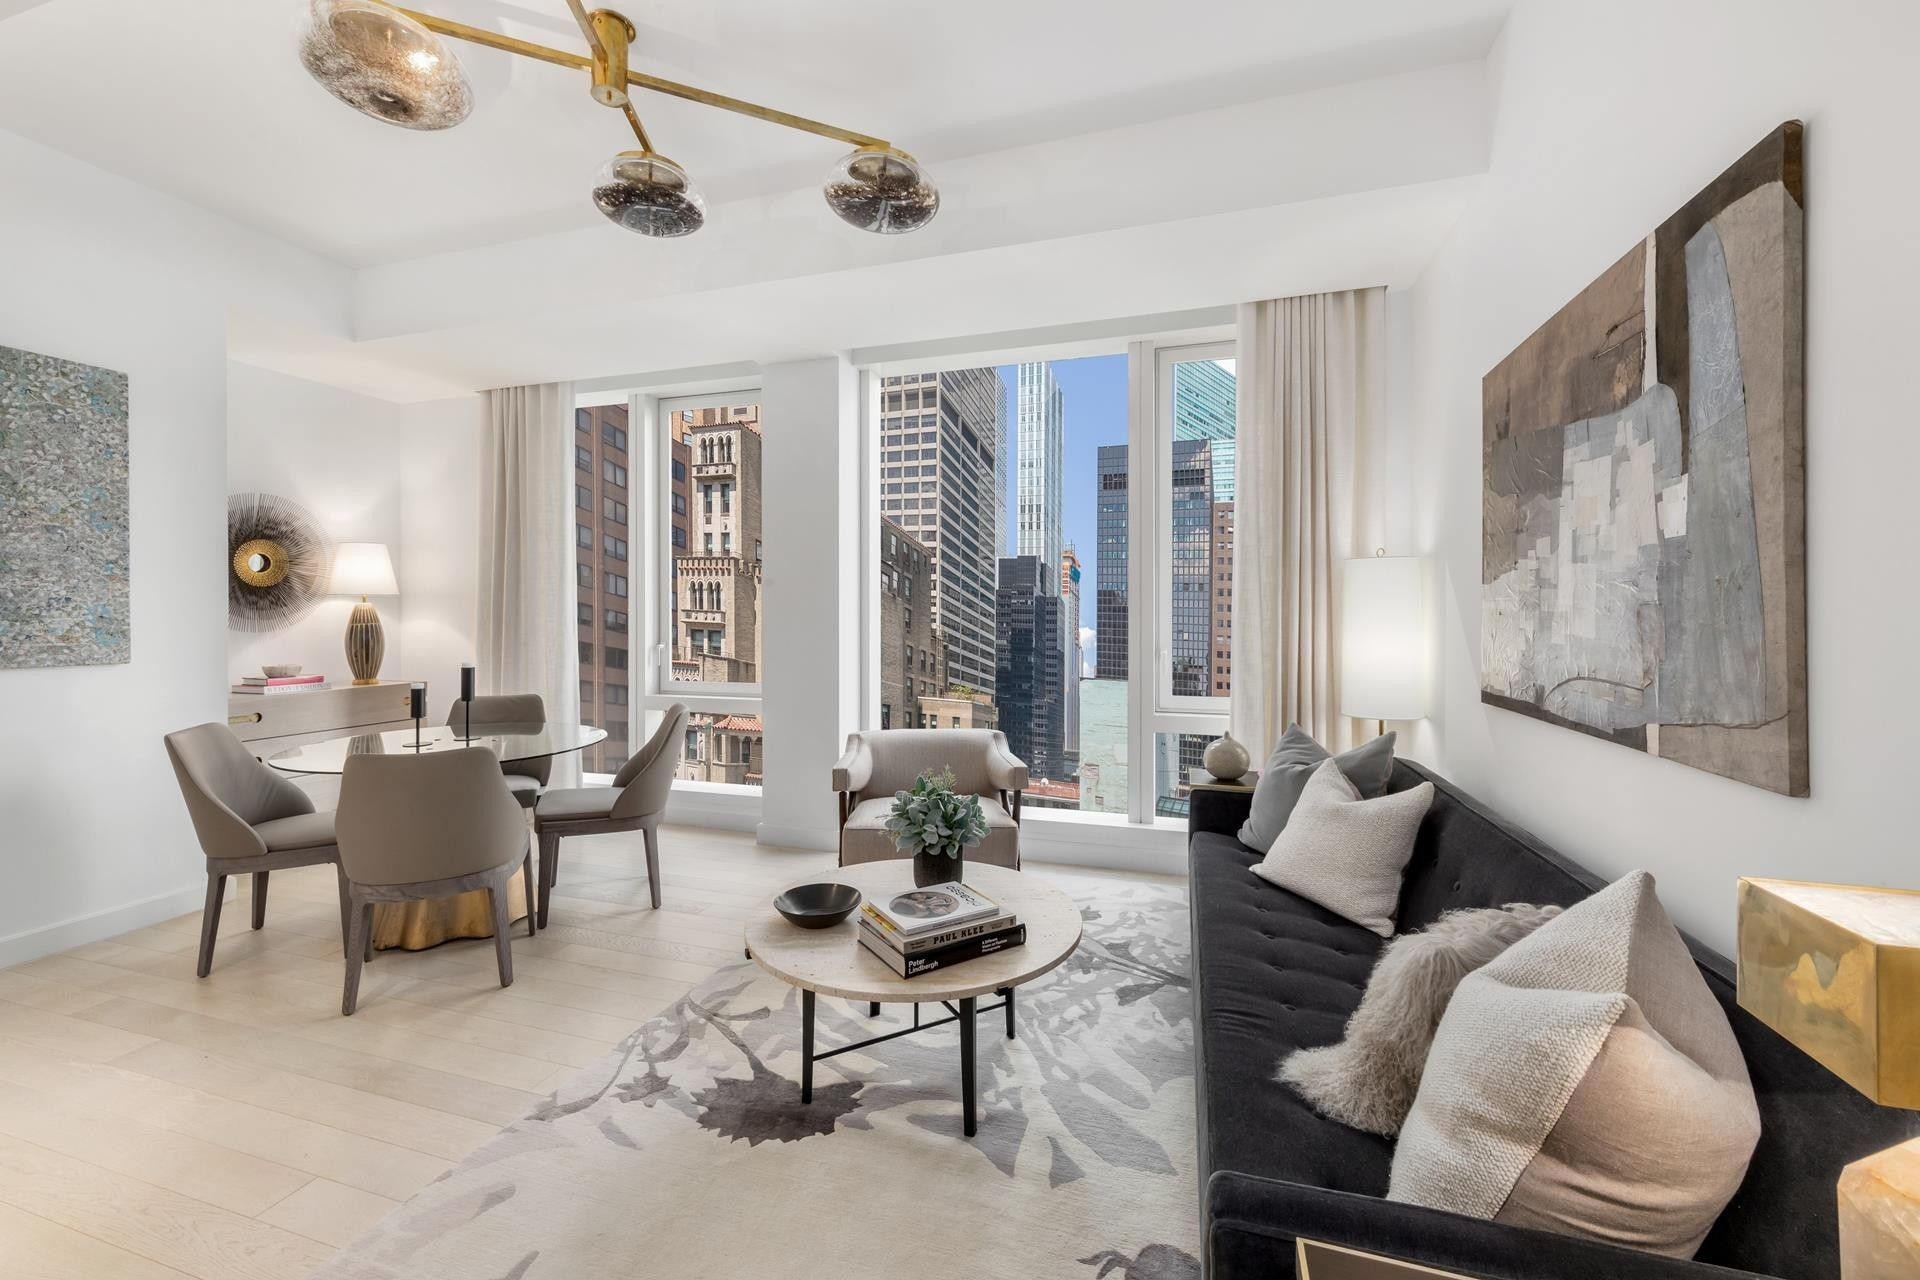 Property à The Centrale Condo, 138 E 50TH ST , 32B Midtown Manhattan, New York, NY 10022